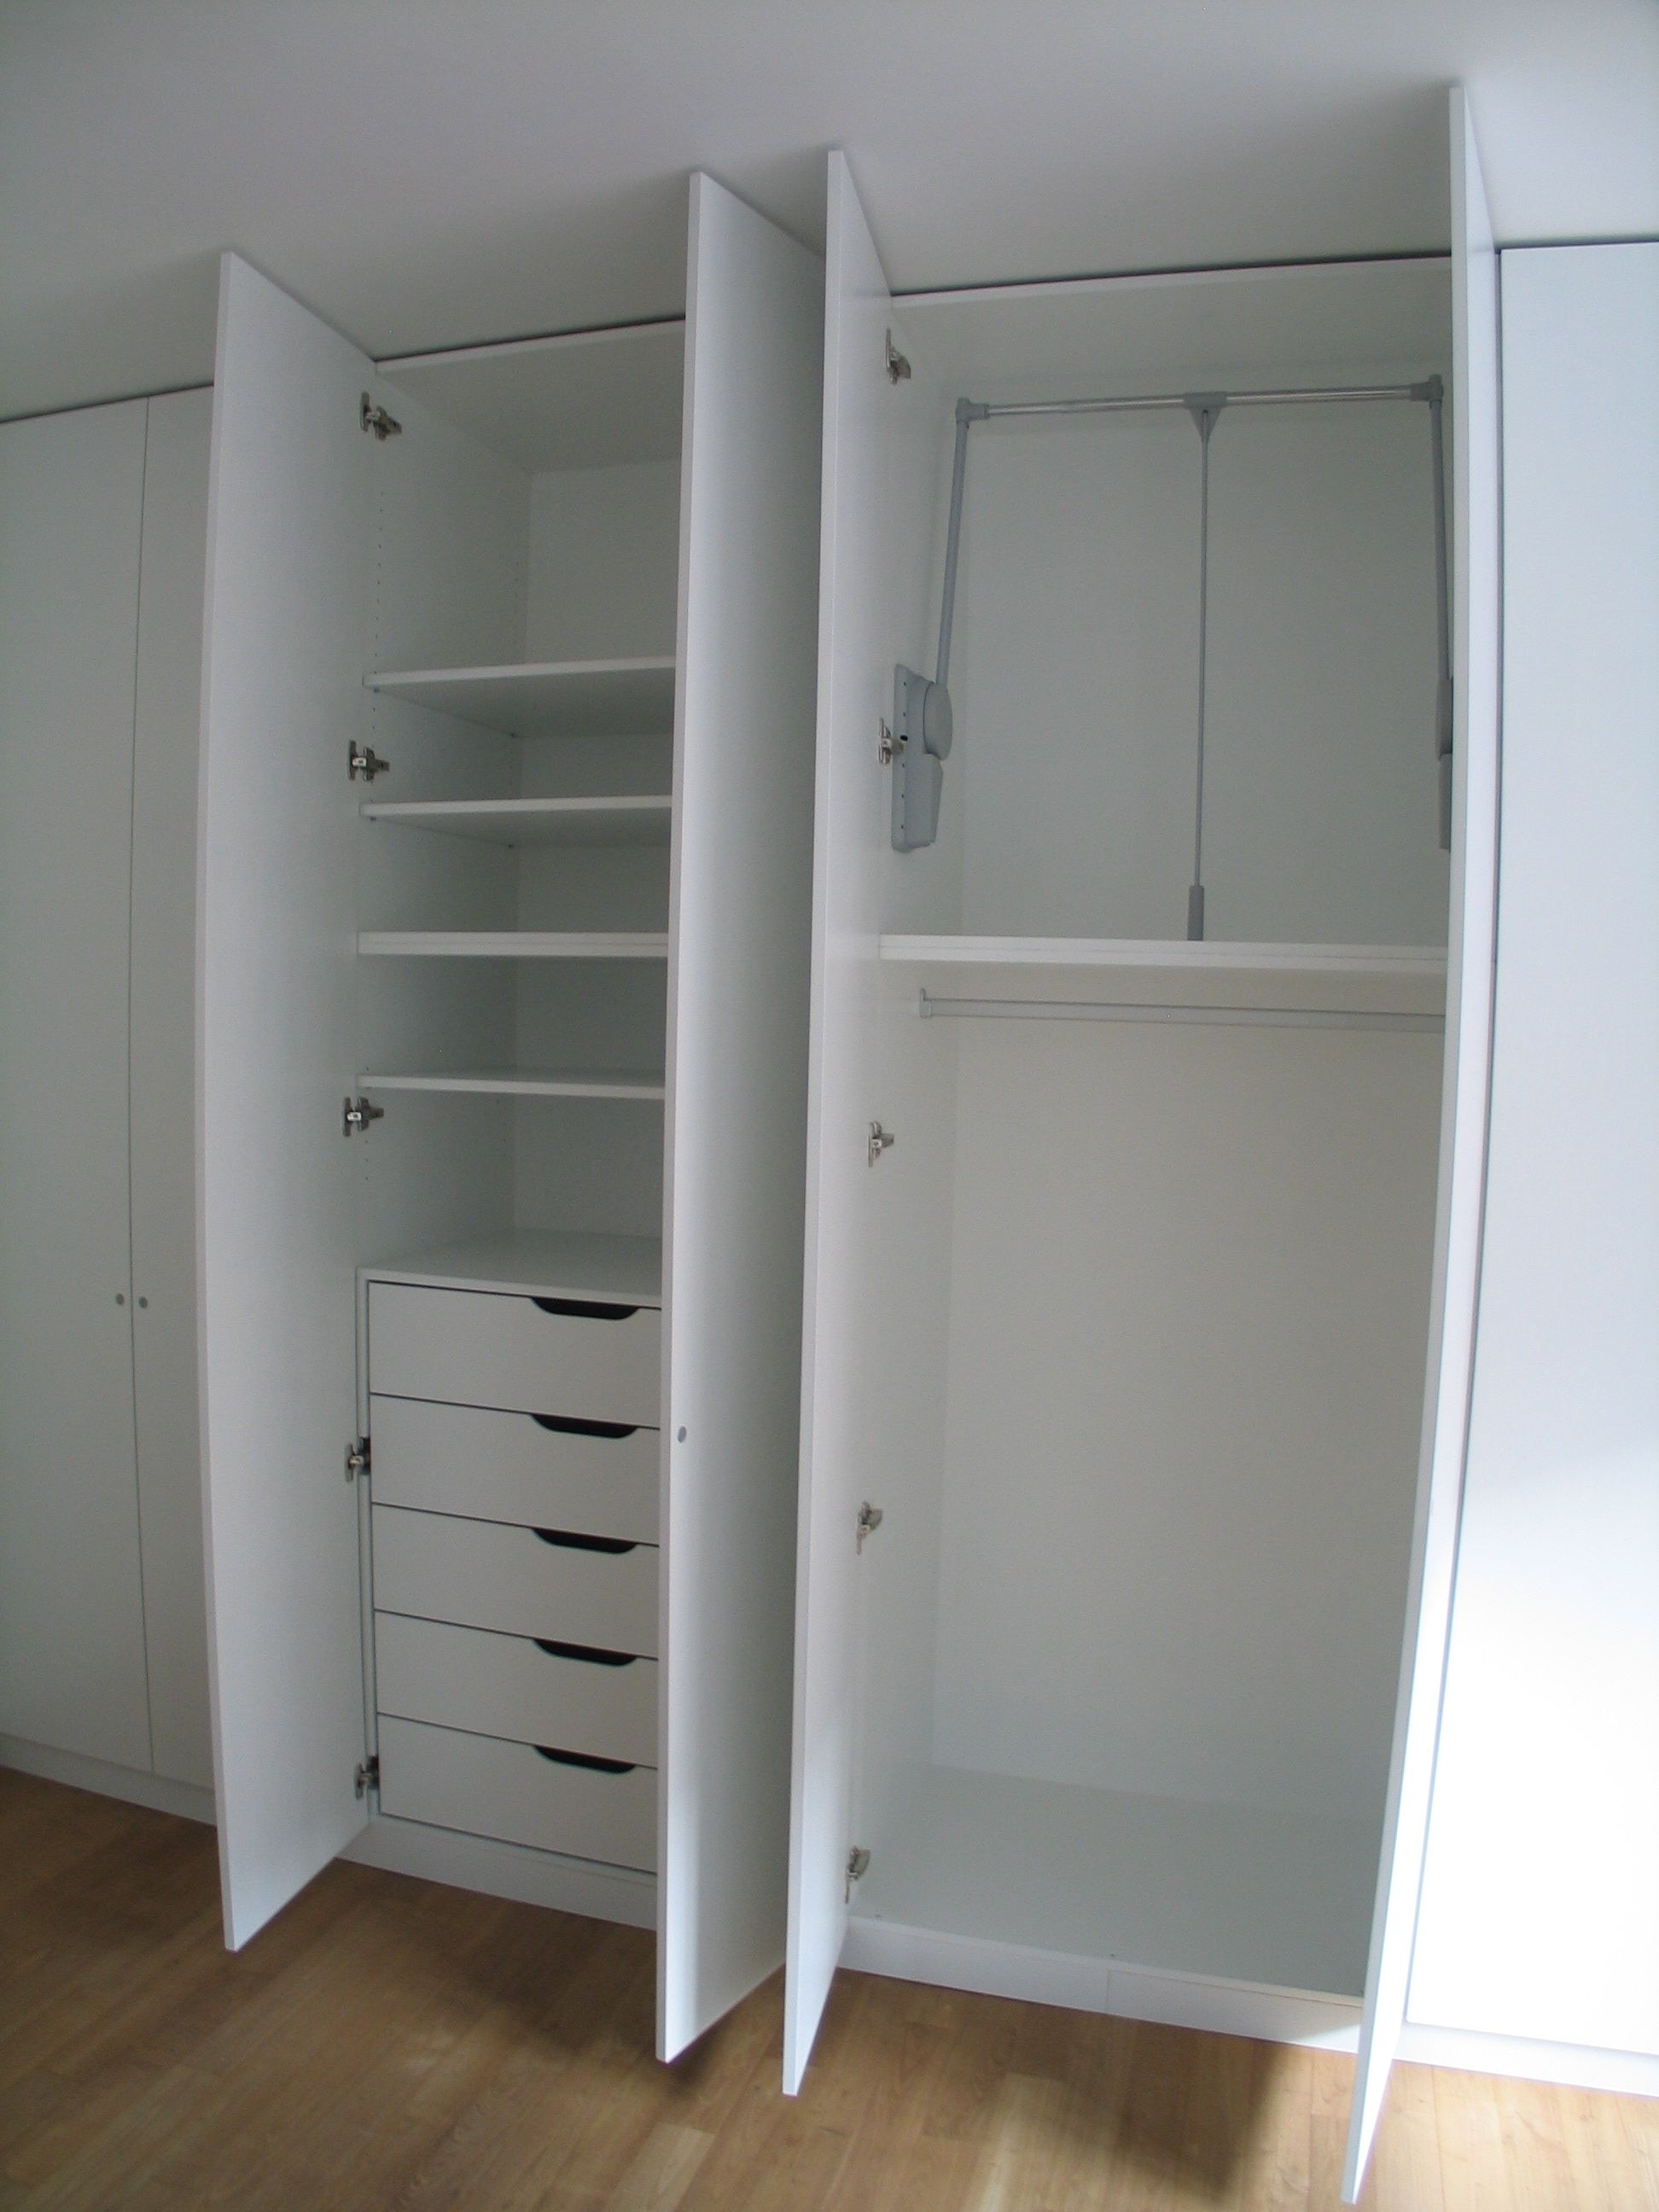 White Wooden Wardrobes With Regard To Well Liked Vintage White Wooden Wardrobe With Inside Shelves And Numerous (View 14 of 15)